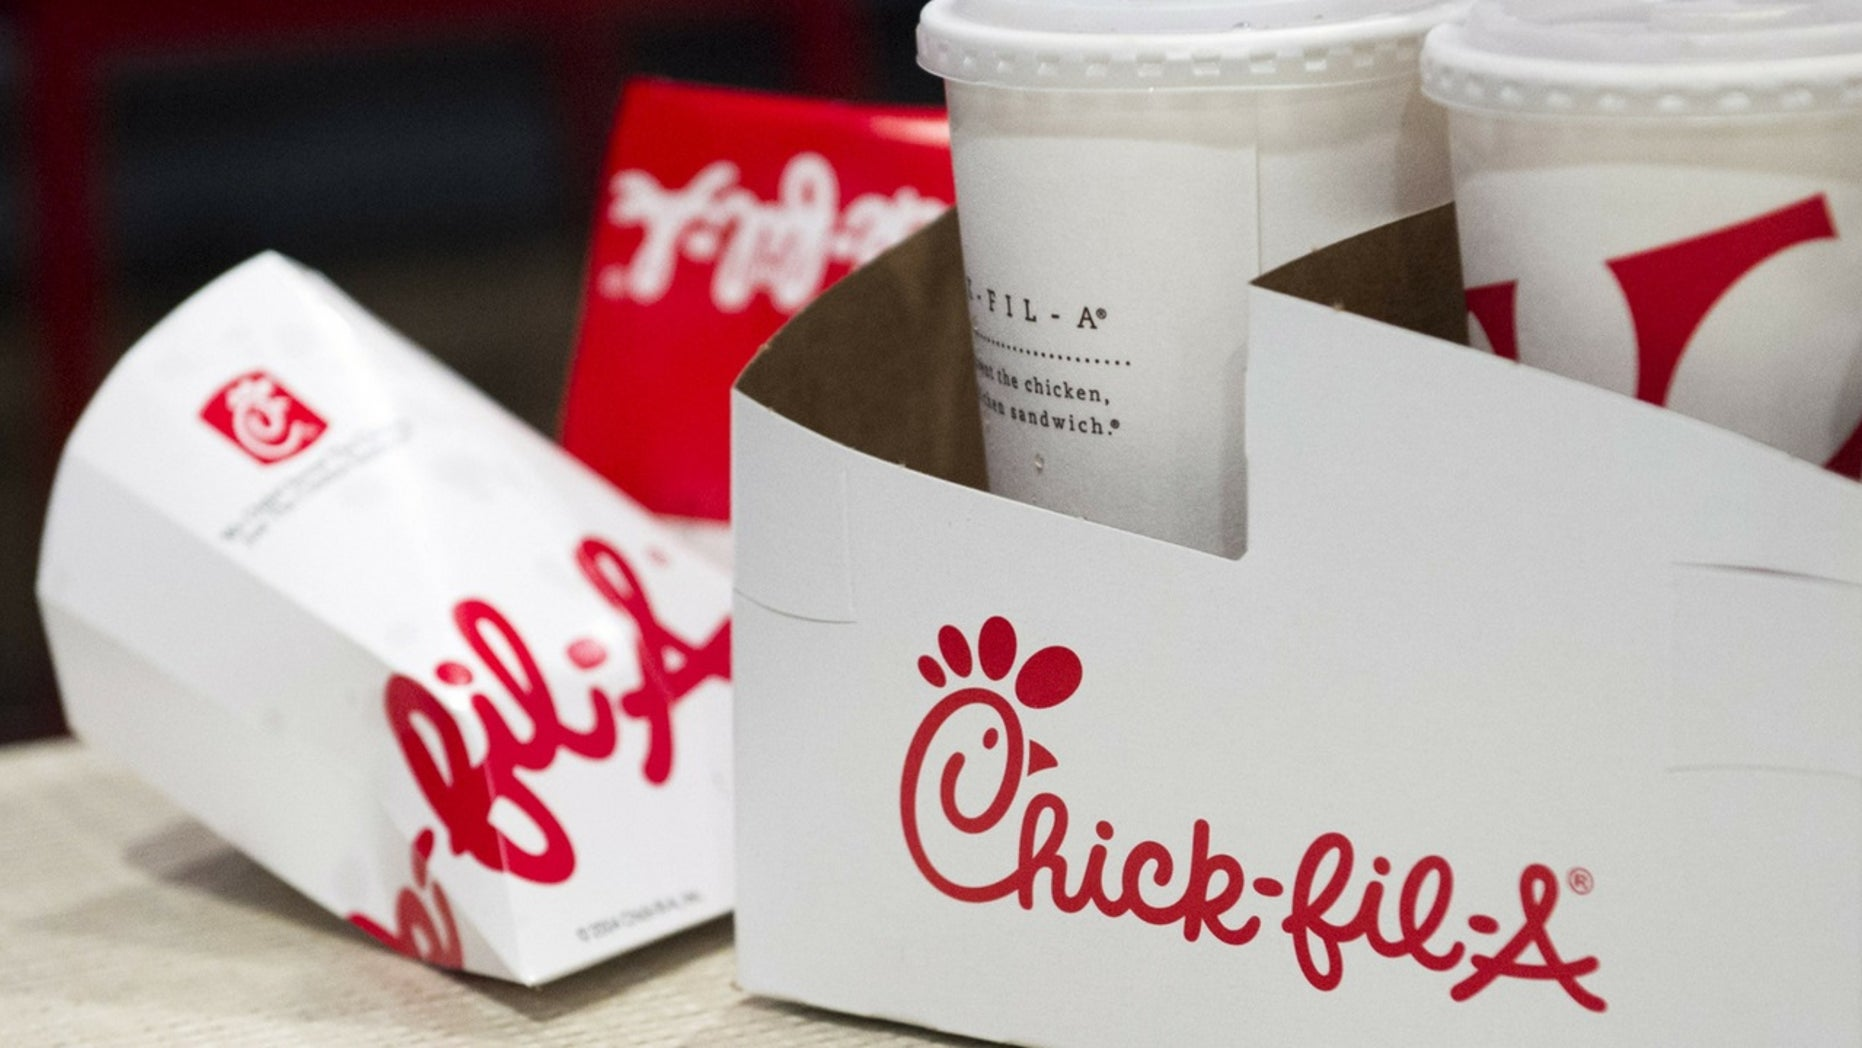 Social media users were upset a viral video showed millennials disliking Chick-fil-A.